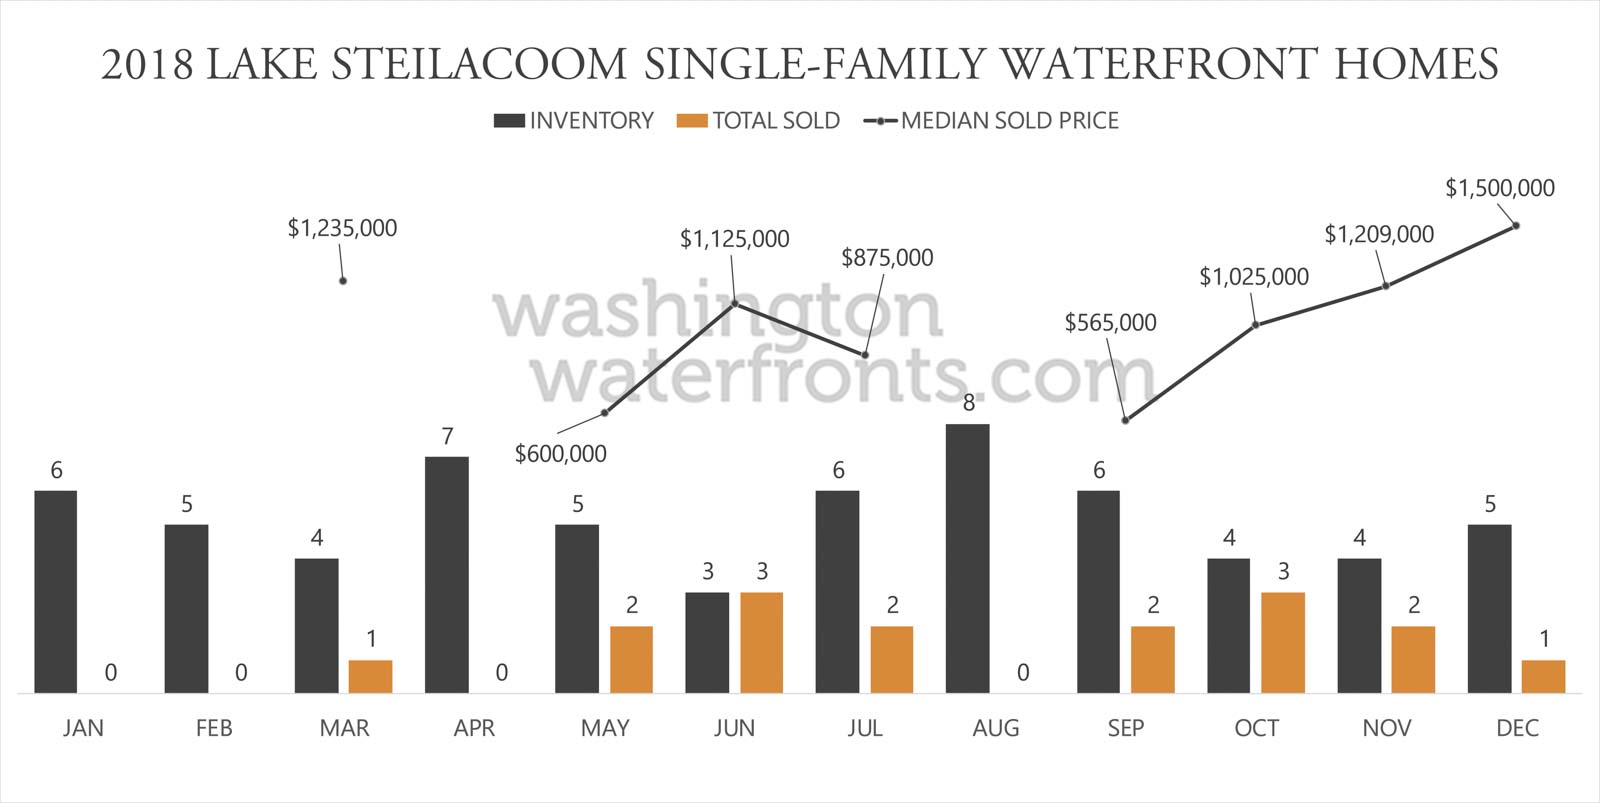 Lake Steilacoom Waterfront Inventory